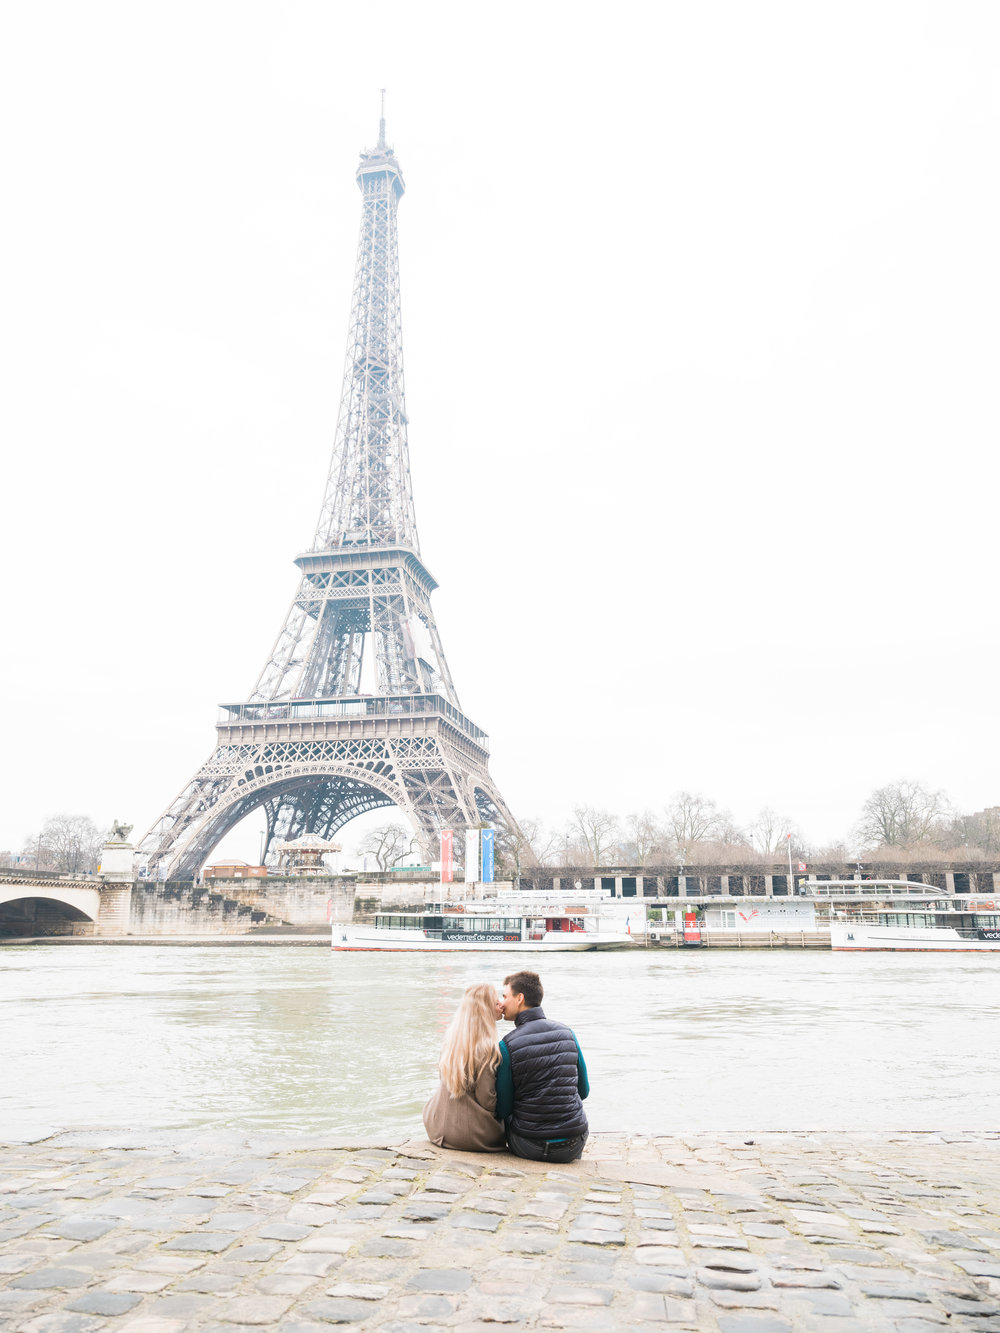 romantic engagement photo session at the eiffel tower in paris france on a winter's day